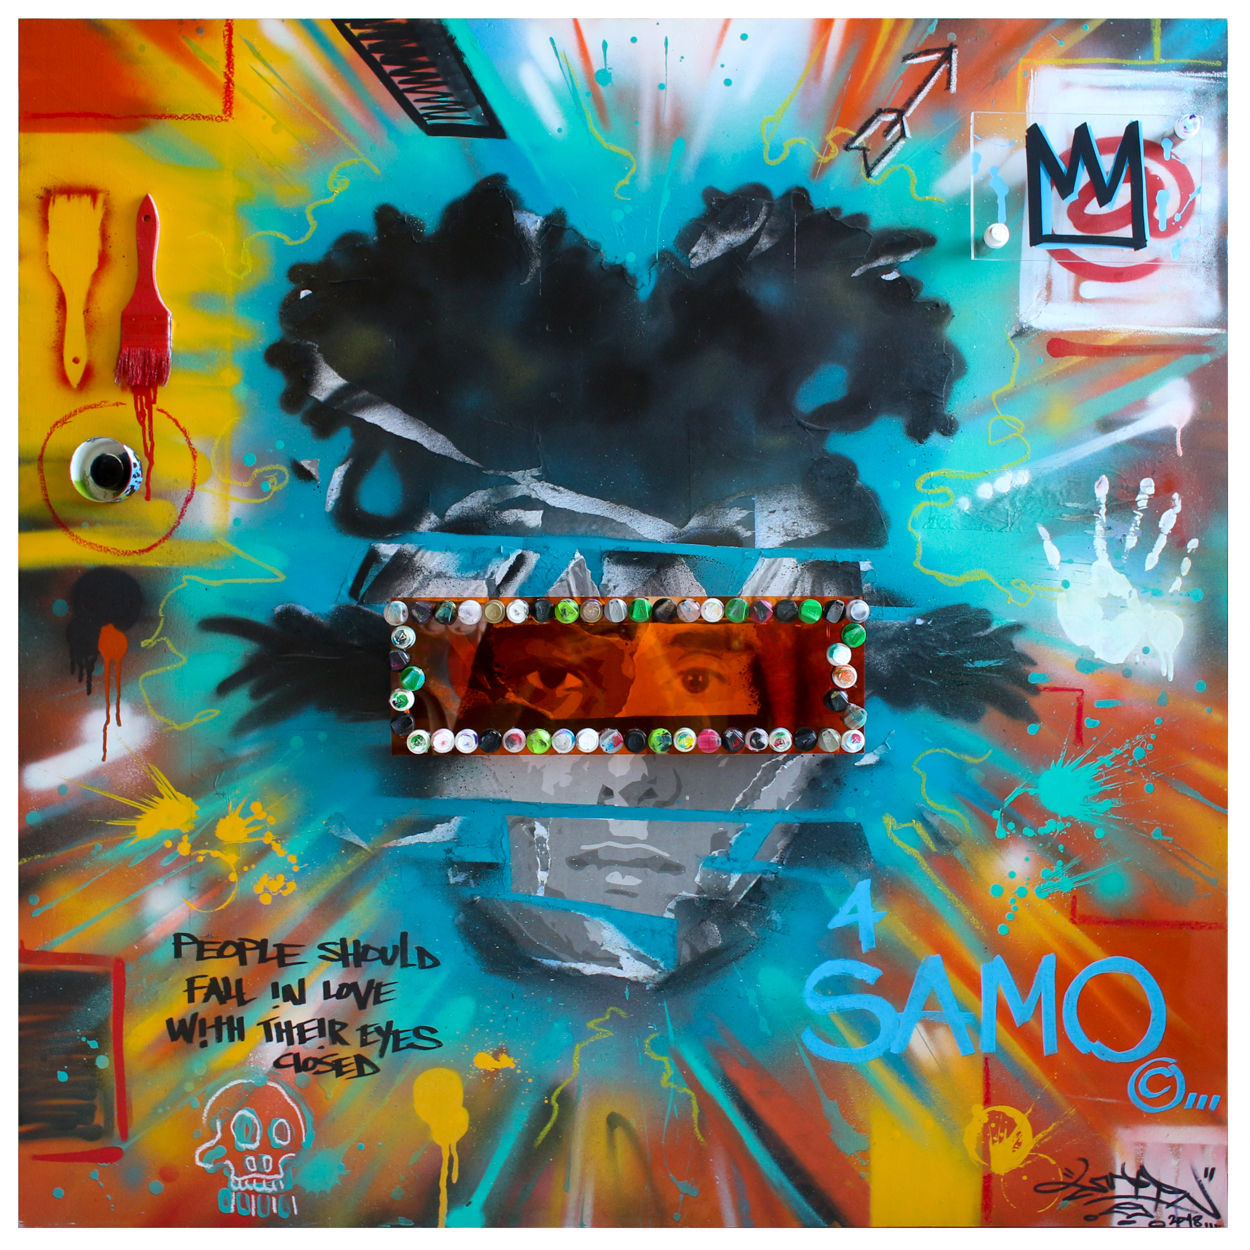 Changing Parallels 2018 – Spray Paint, Acrylic, Mixed Media on Wood Panel 48×48